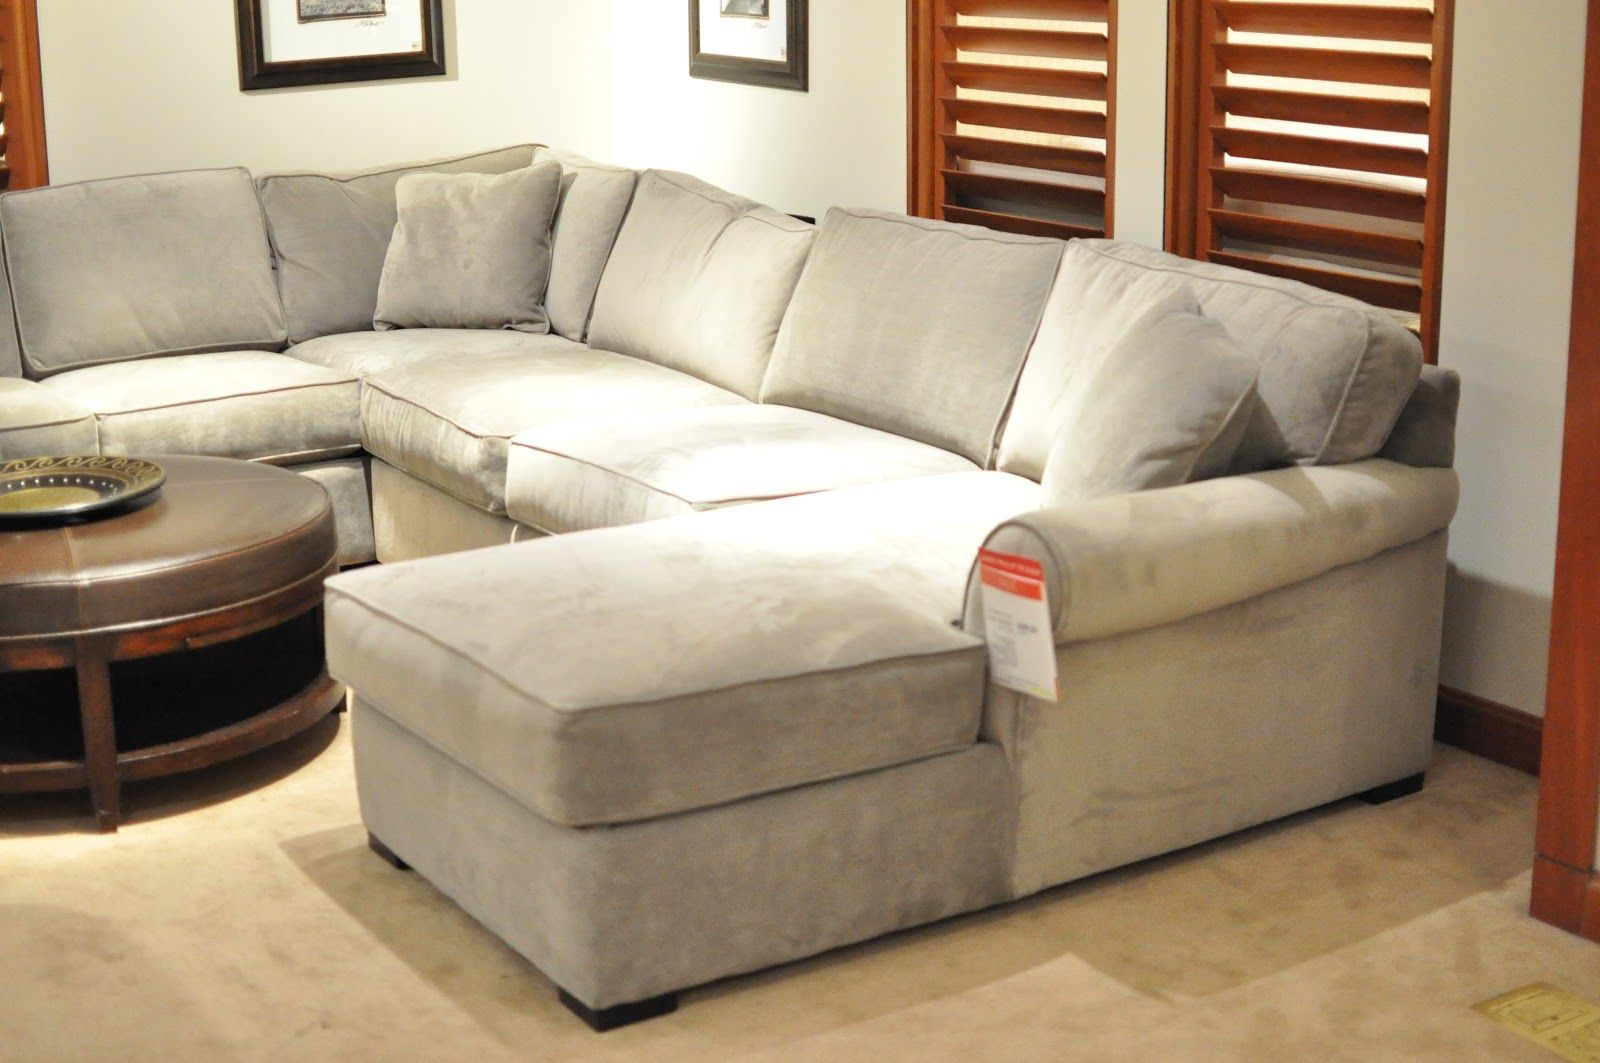 Buchanan Sectional Sofa Pottery Barn Living Room Sofa Design